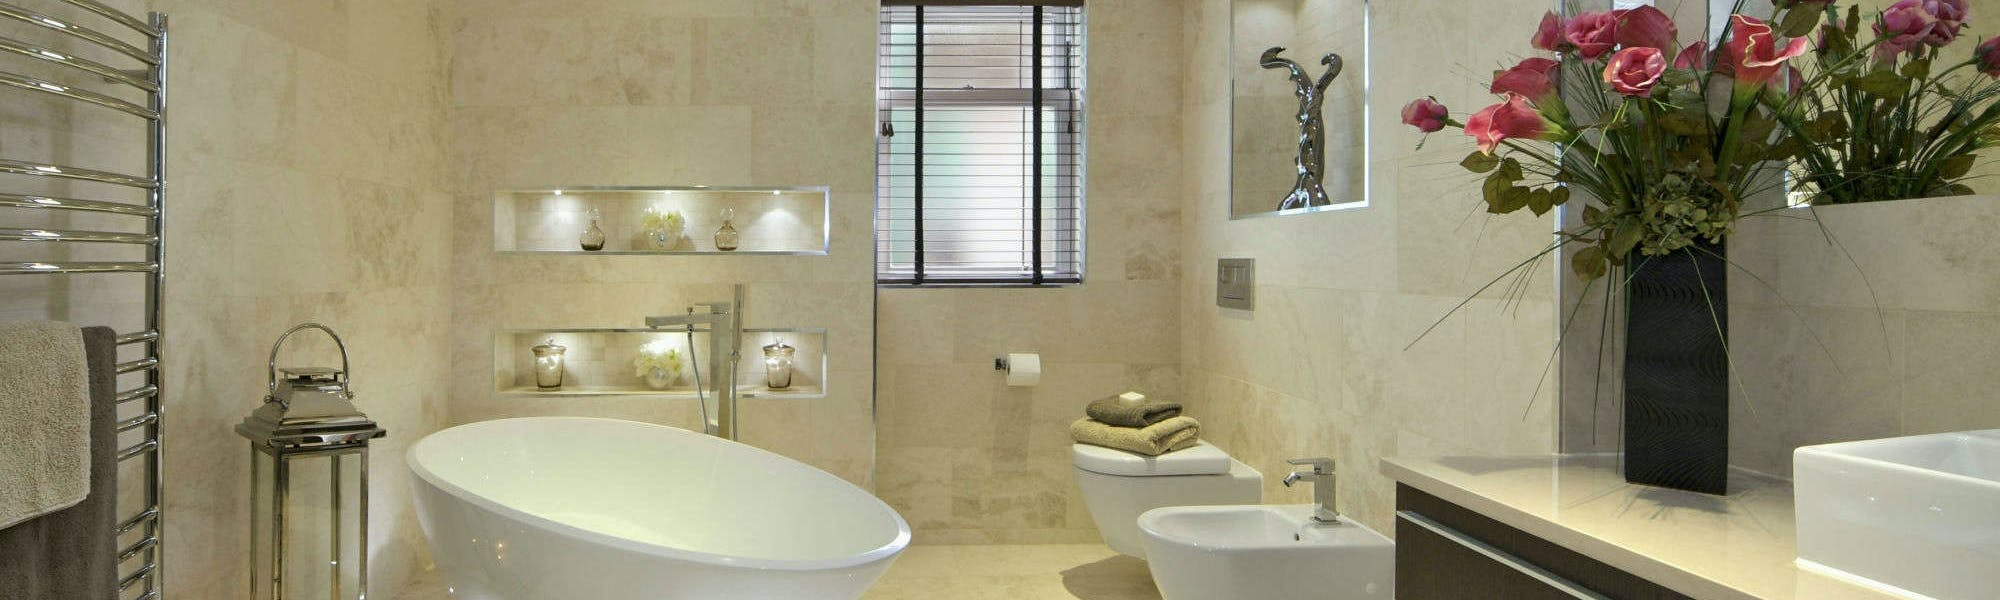 Bathrooms refurbishment - design, supply & install